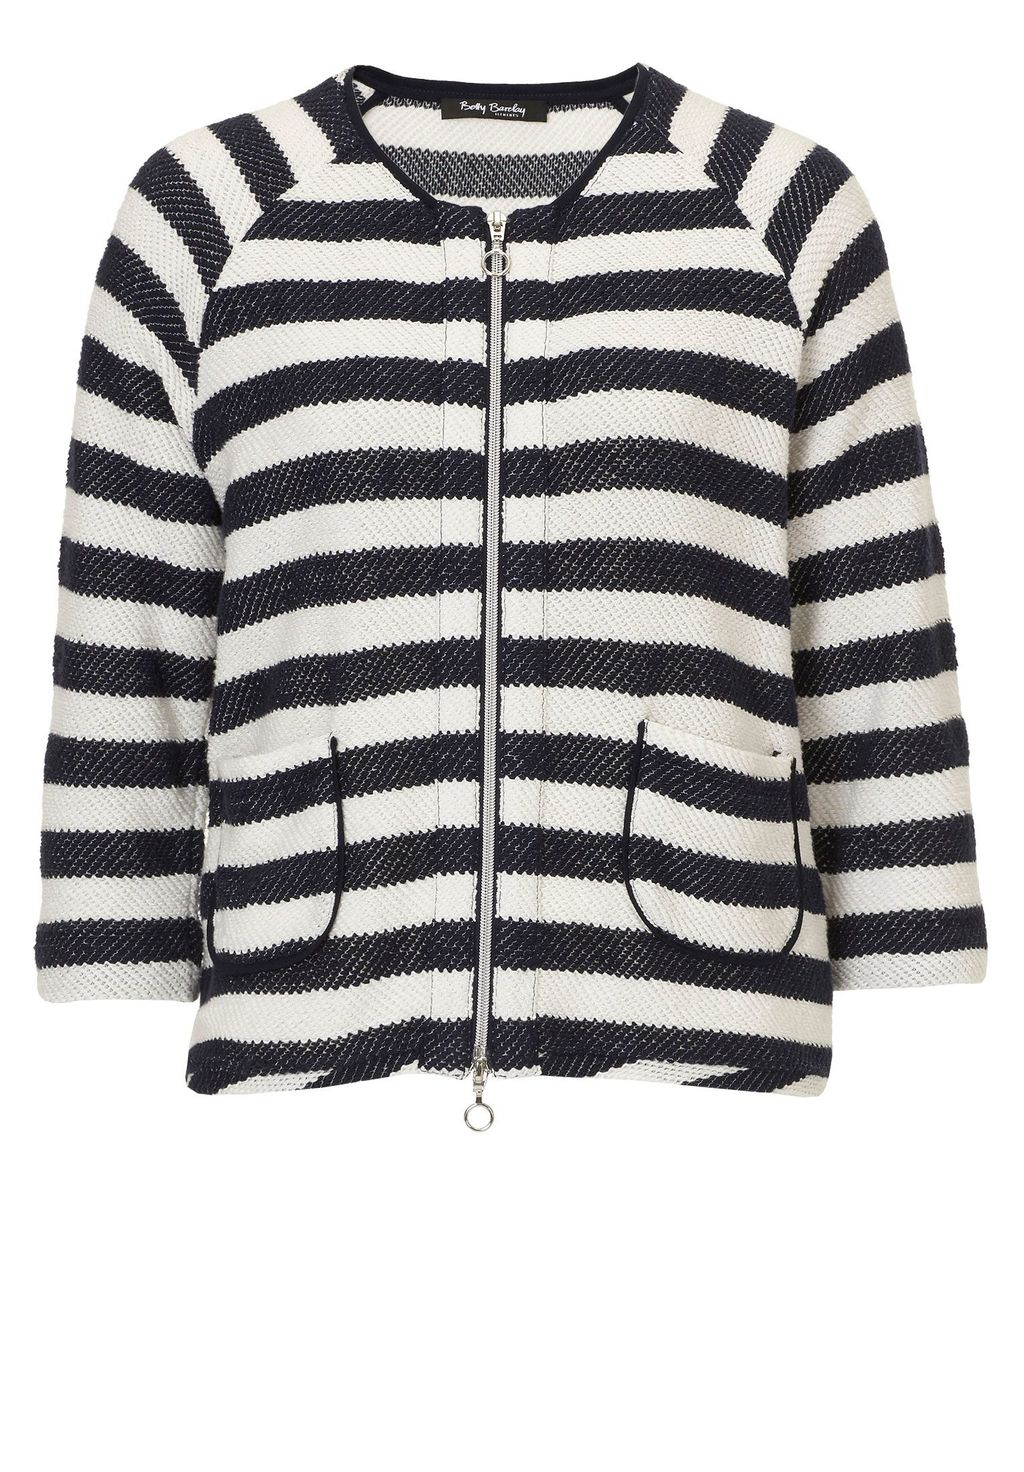 Striped Cardigan With Zip, Navy - neckline: round neck; sleeve style: raglan; pattern: horizontal stripes; secondary colour: ivory/cream; predominant colour: navy; occasions: casual, creative work; length: standard; style: standard; fibres: cotton - mix; fit: standard fit; sleeve length: 3/4 length; texture group: knits/crochet; pattern type: knitted - fine stitch; season: s/s 2016; wardrobe: highlight